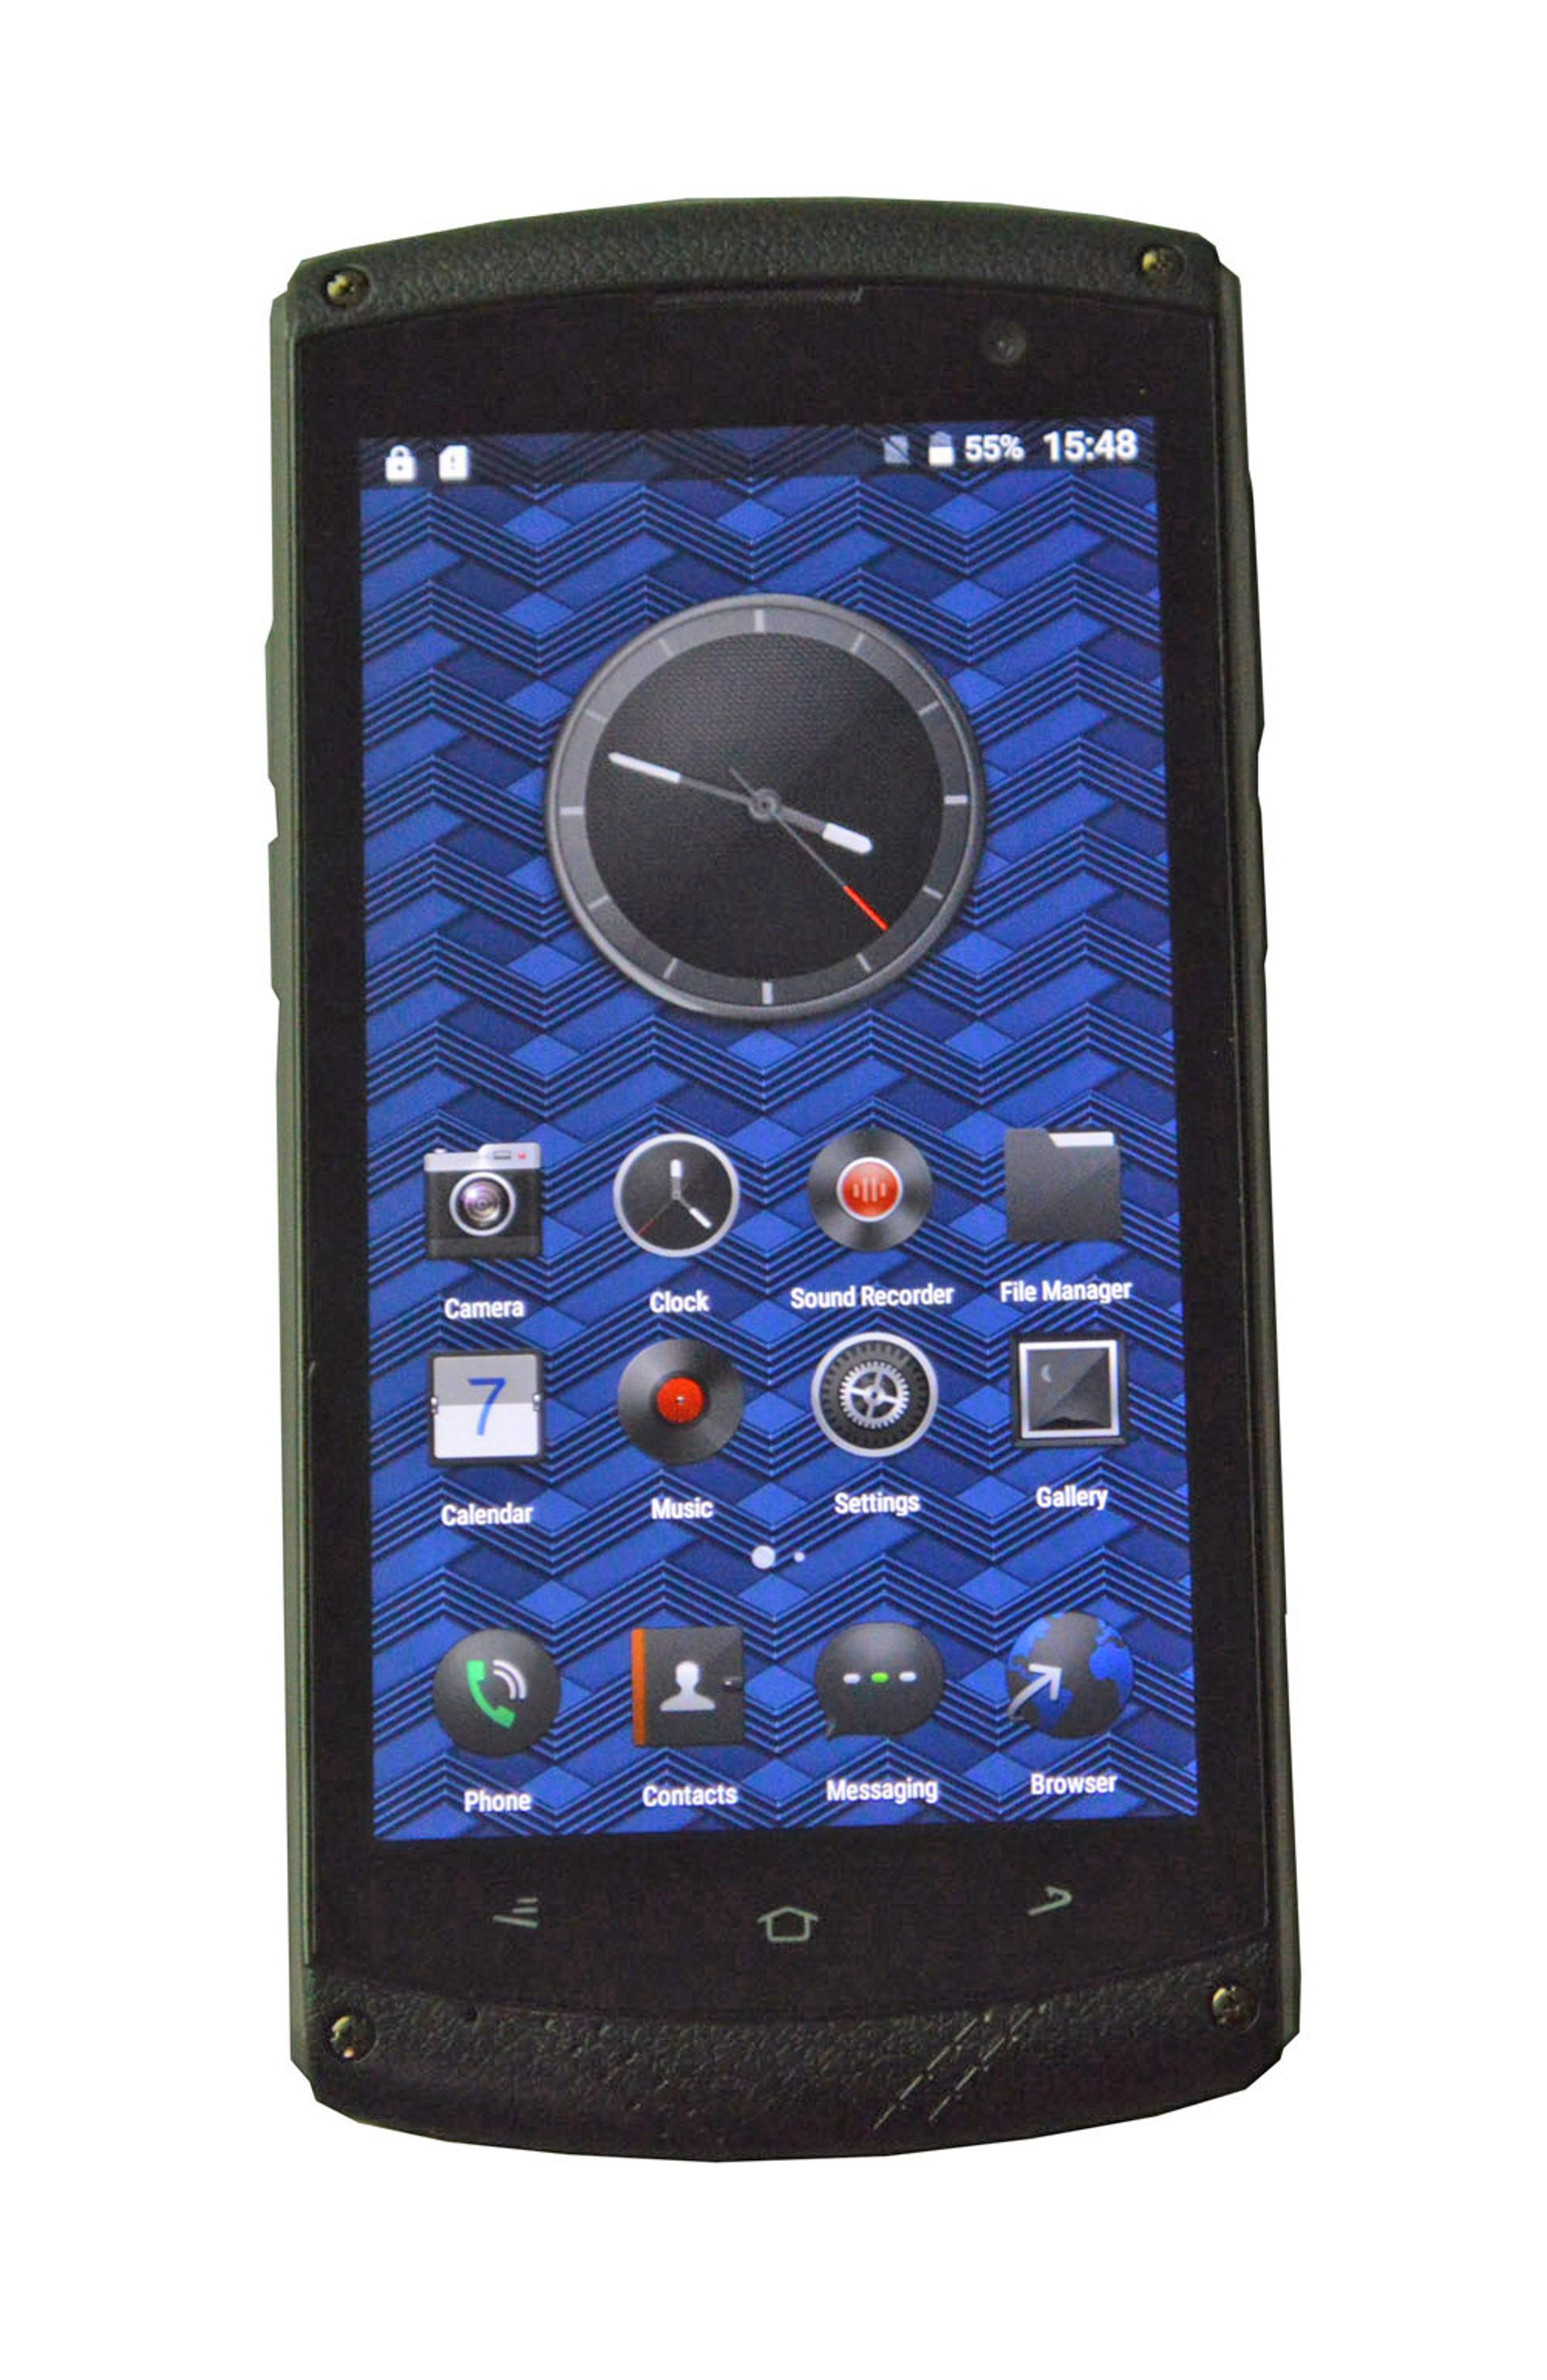 Cheapest Factory 5 inch 4G Ram 64G Rom NFC Octa-core IP68 Rugged Android Phone Or Rugged Android Phone With IP68